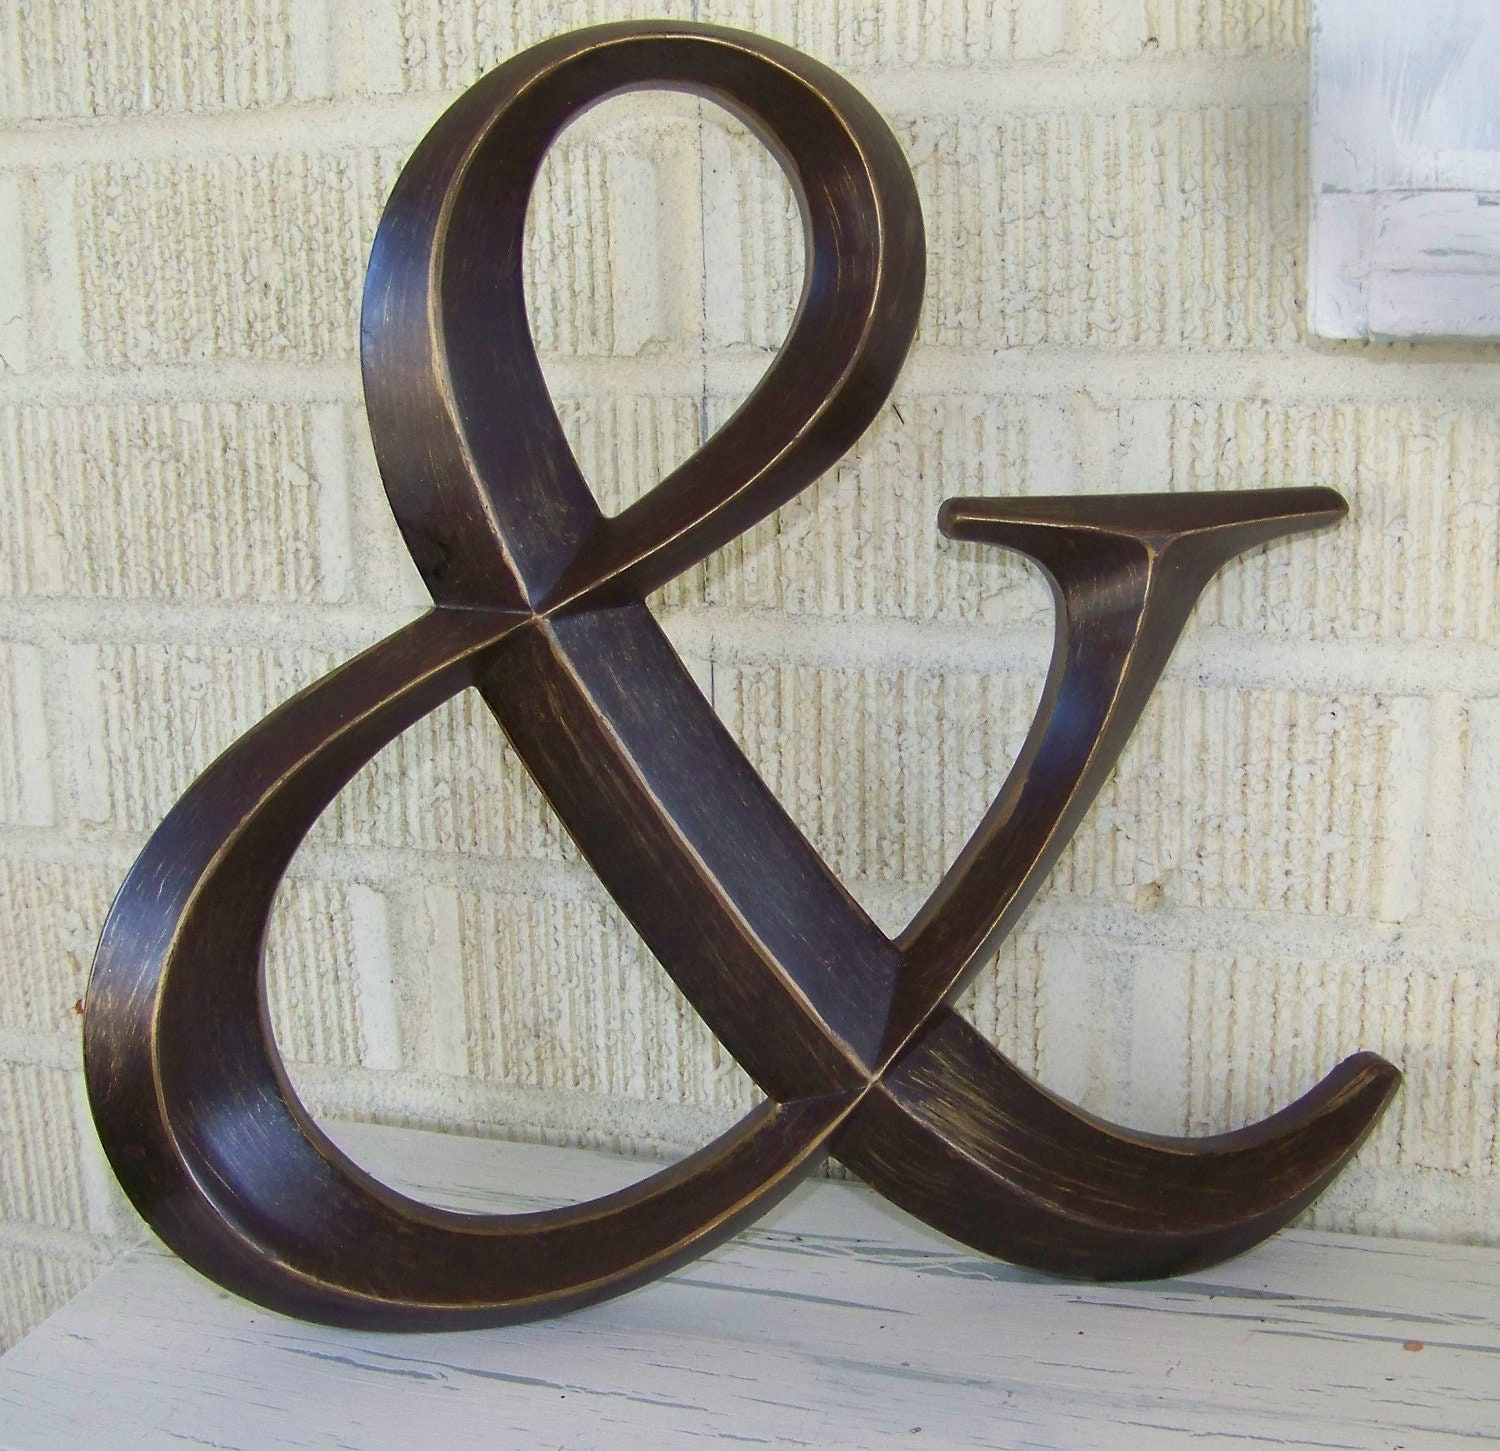 Ampersand symbol wedding decor wedding ampersand symbol for Ampersand decor